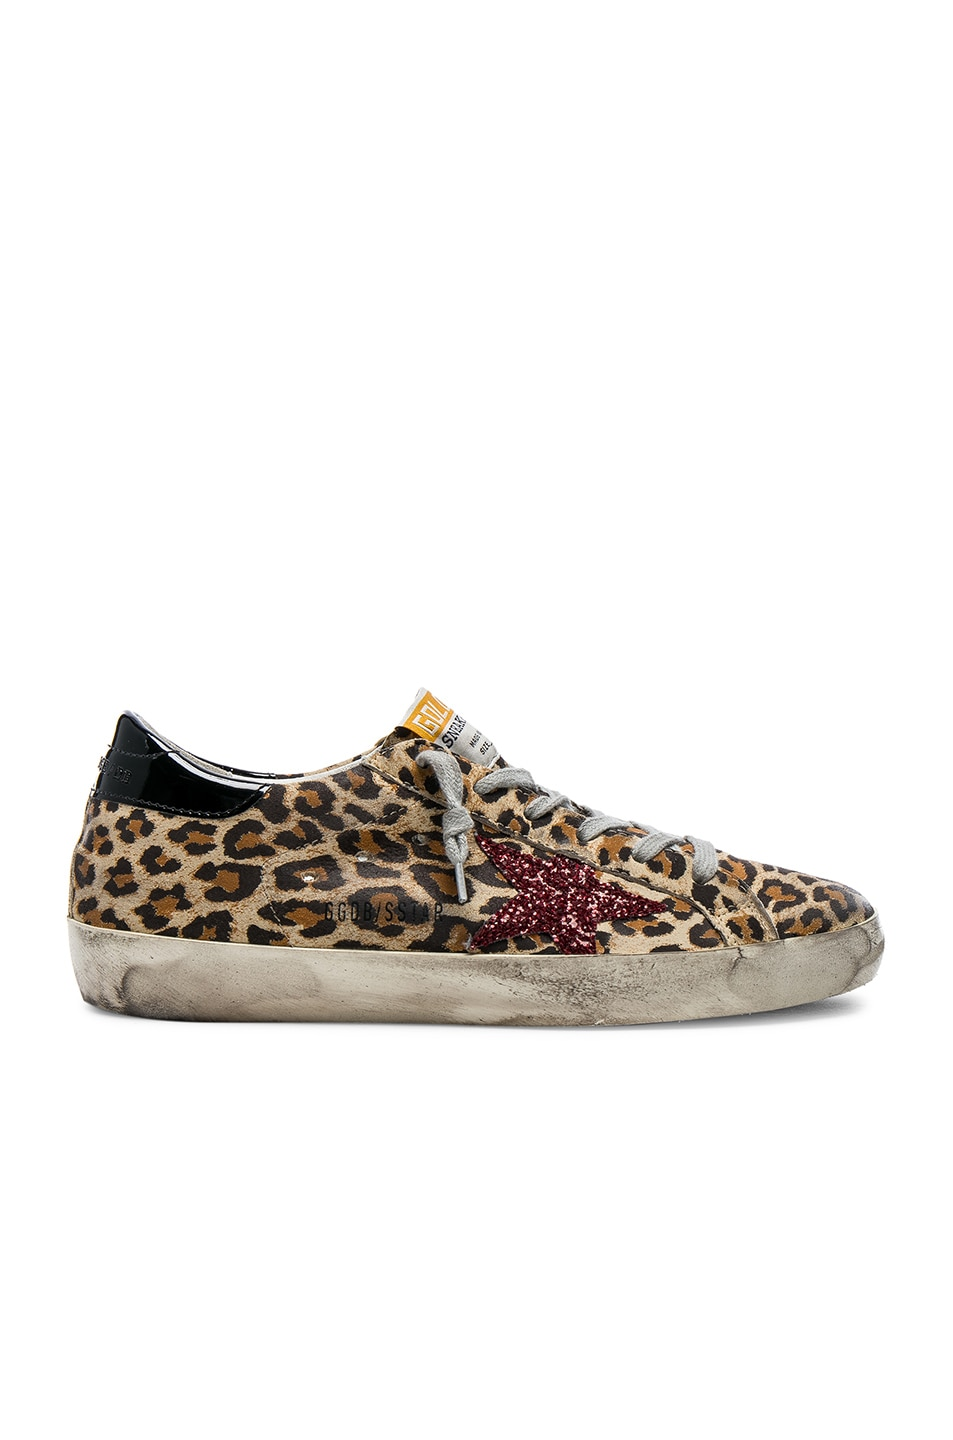 cdb7aa412dc31 Image 1 of Golden Goose Superstar Sneakers in Leopard Suede   Red Glitter  Star